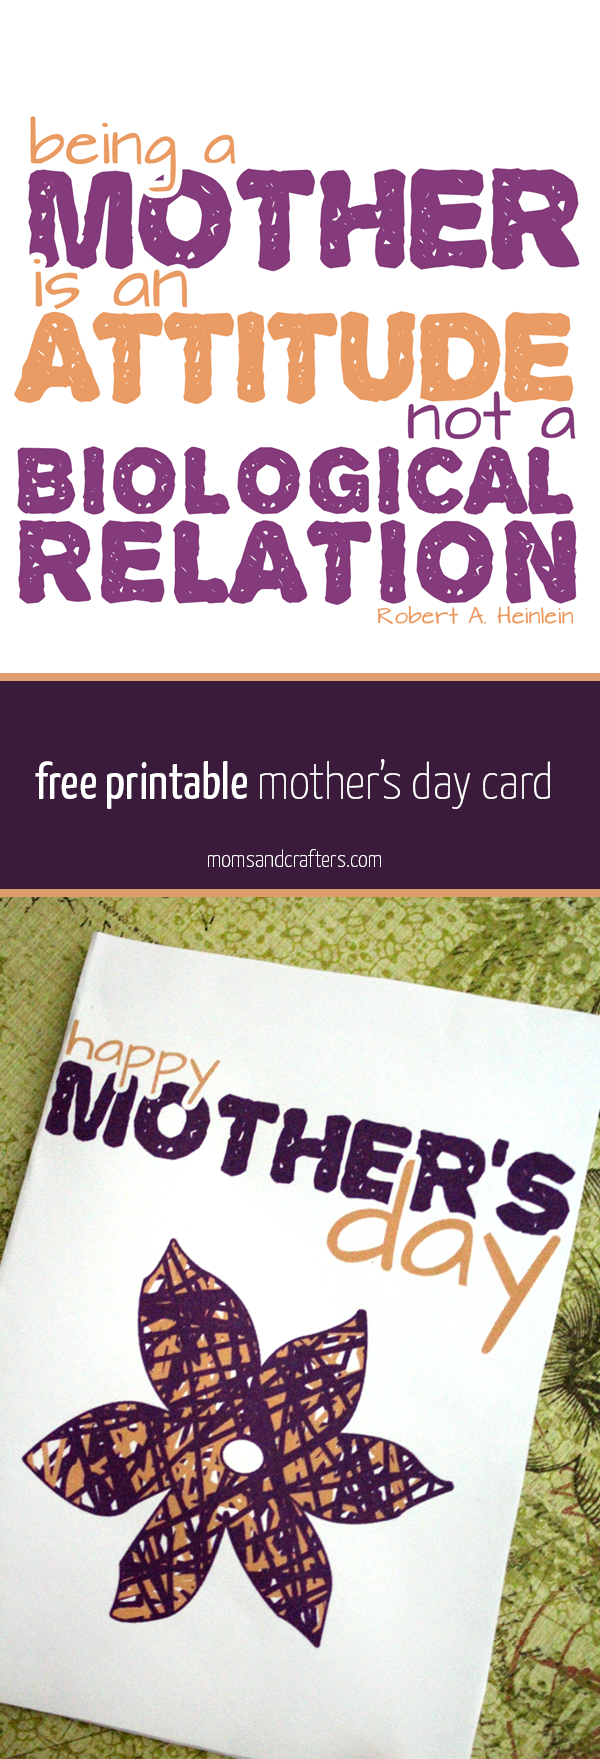 """Click on the link to get this free printable mother's day card that's designed special for mothers who may not be biologically related! It's also great to appreciate the """"beyond pregnancy"""" moments from your mother, whether biological or not..."""